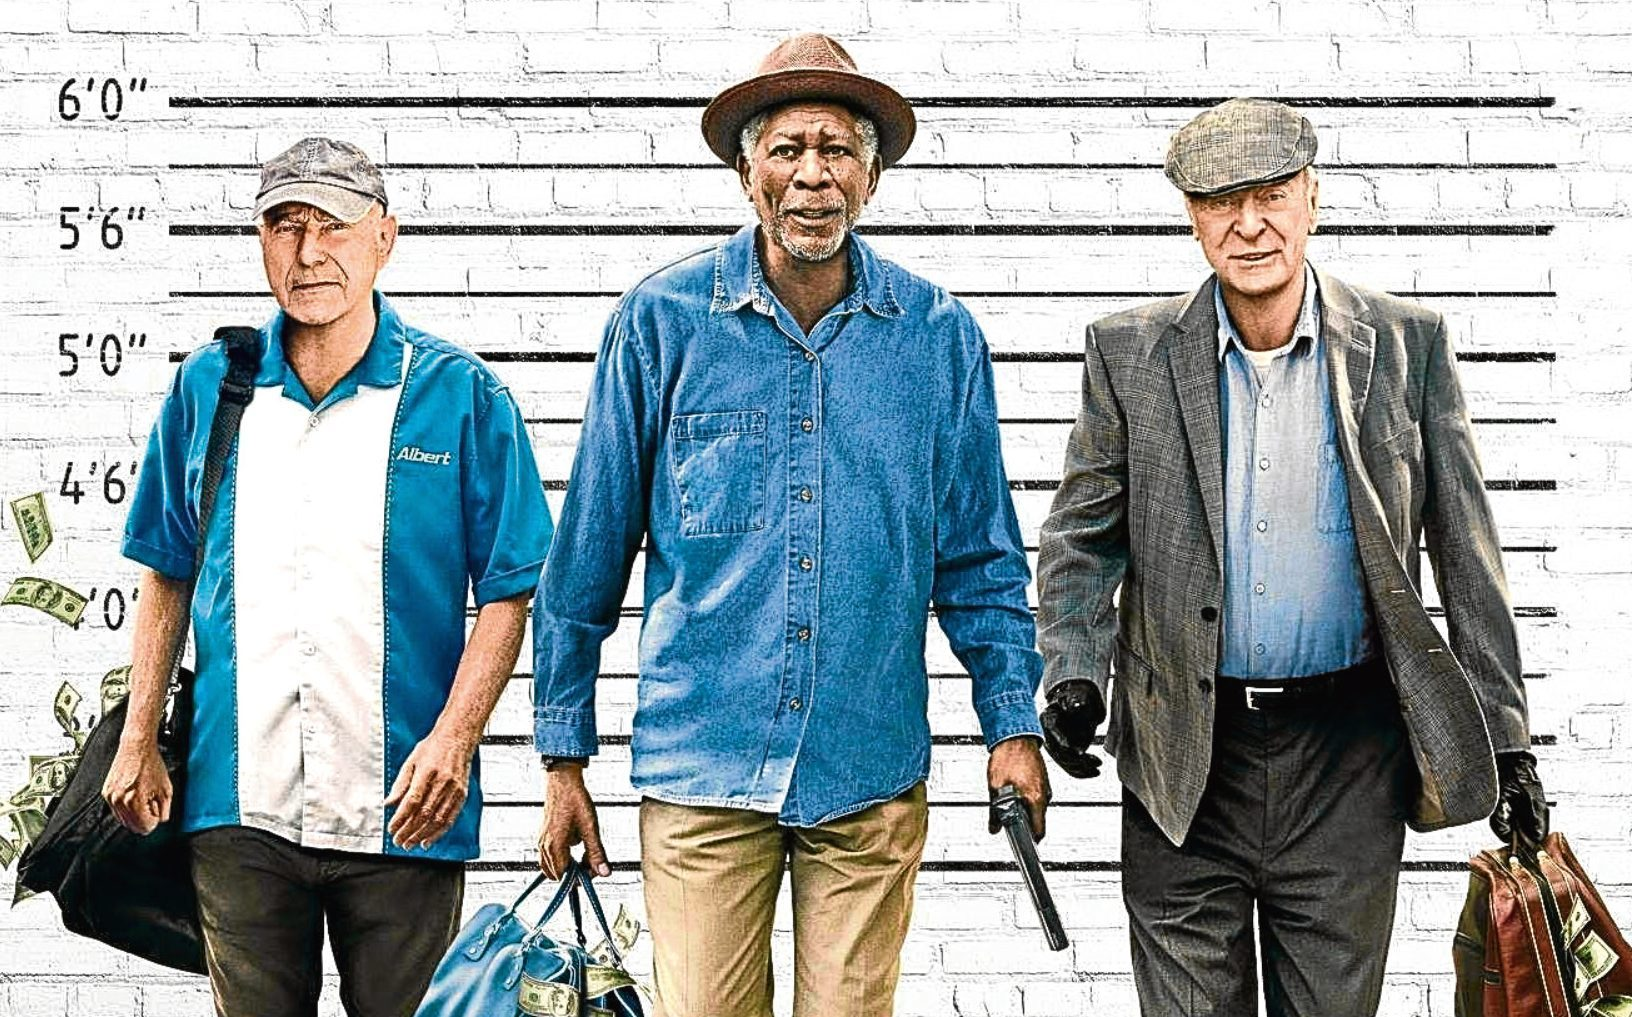 Alan Arkin, Morgan Freeman and Michael Caine in Going In Style (Allstar/WARNER BROS.)